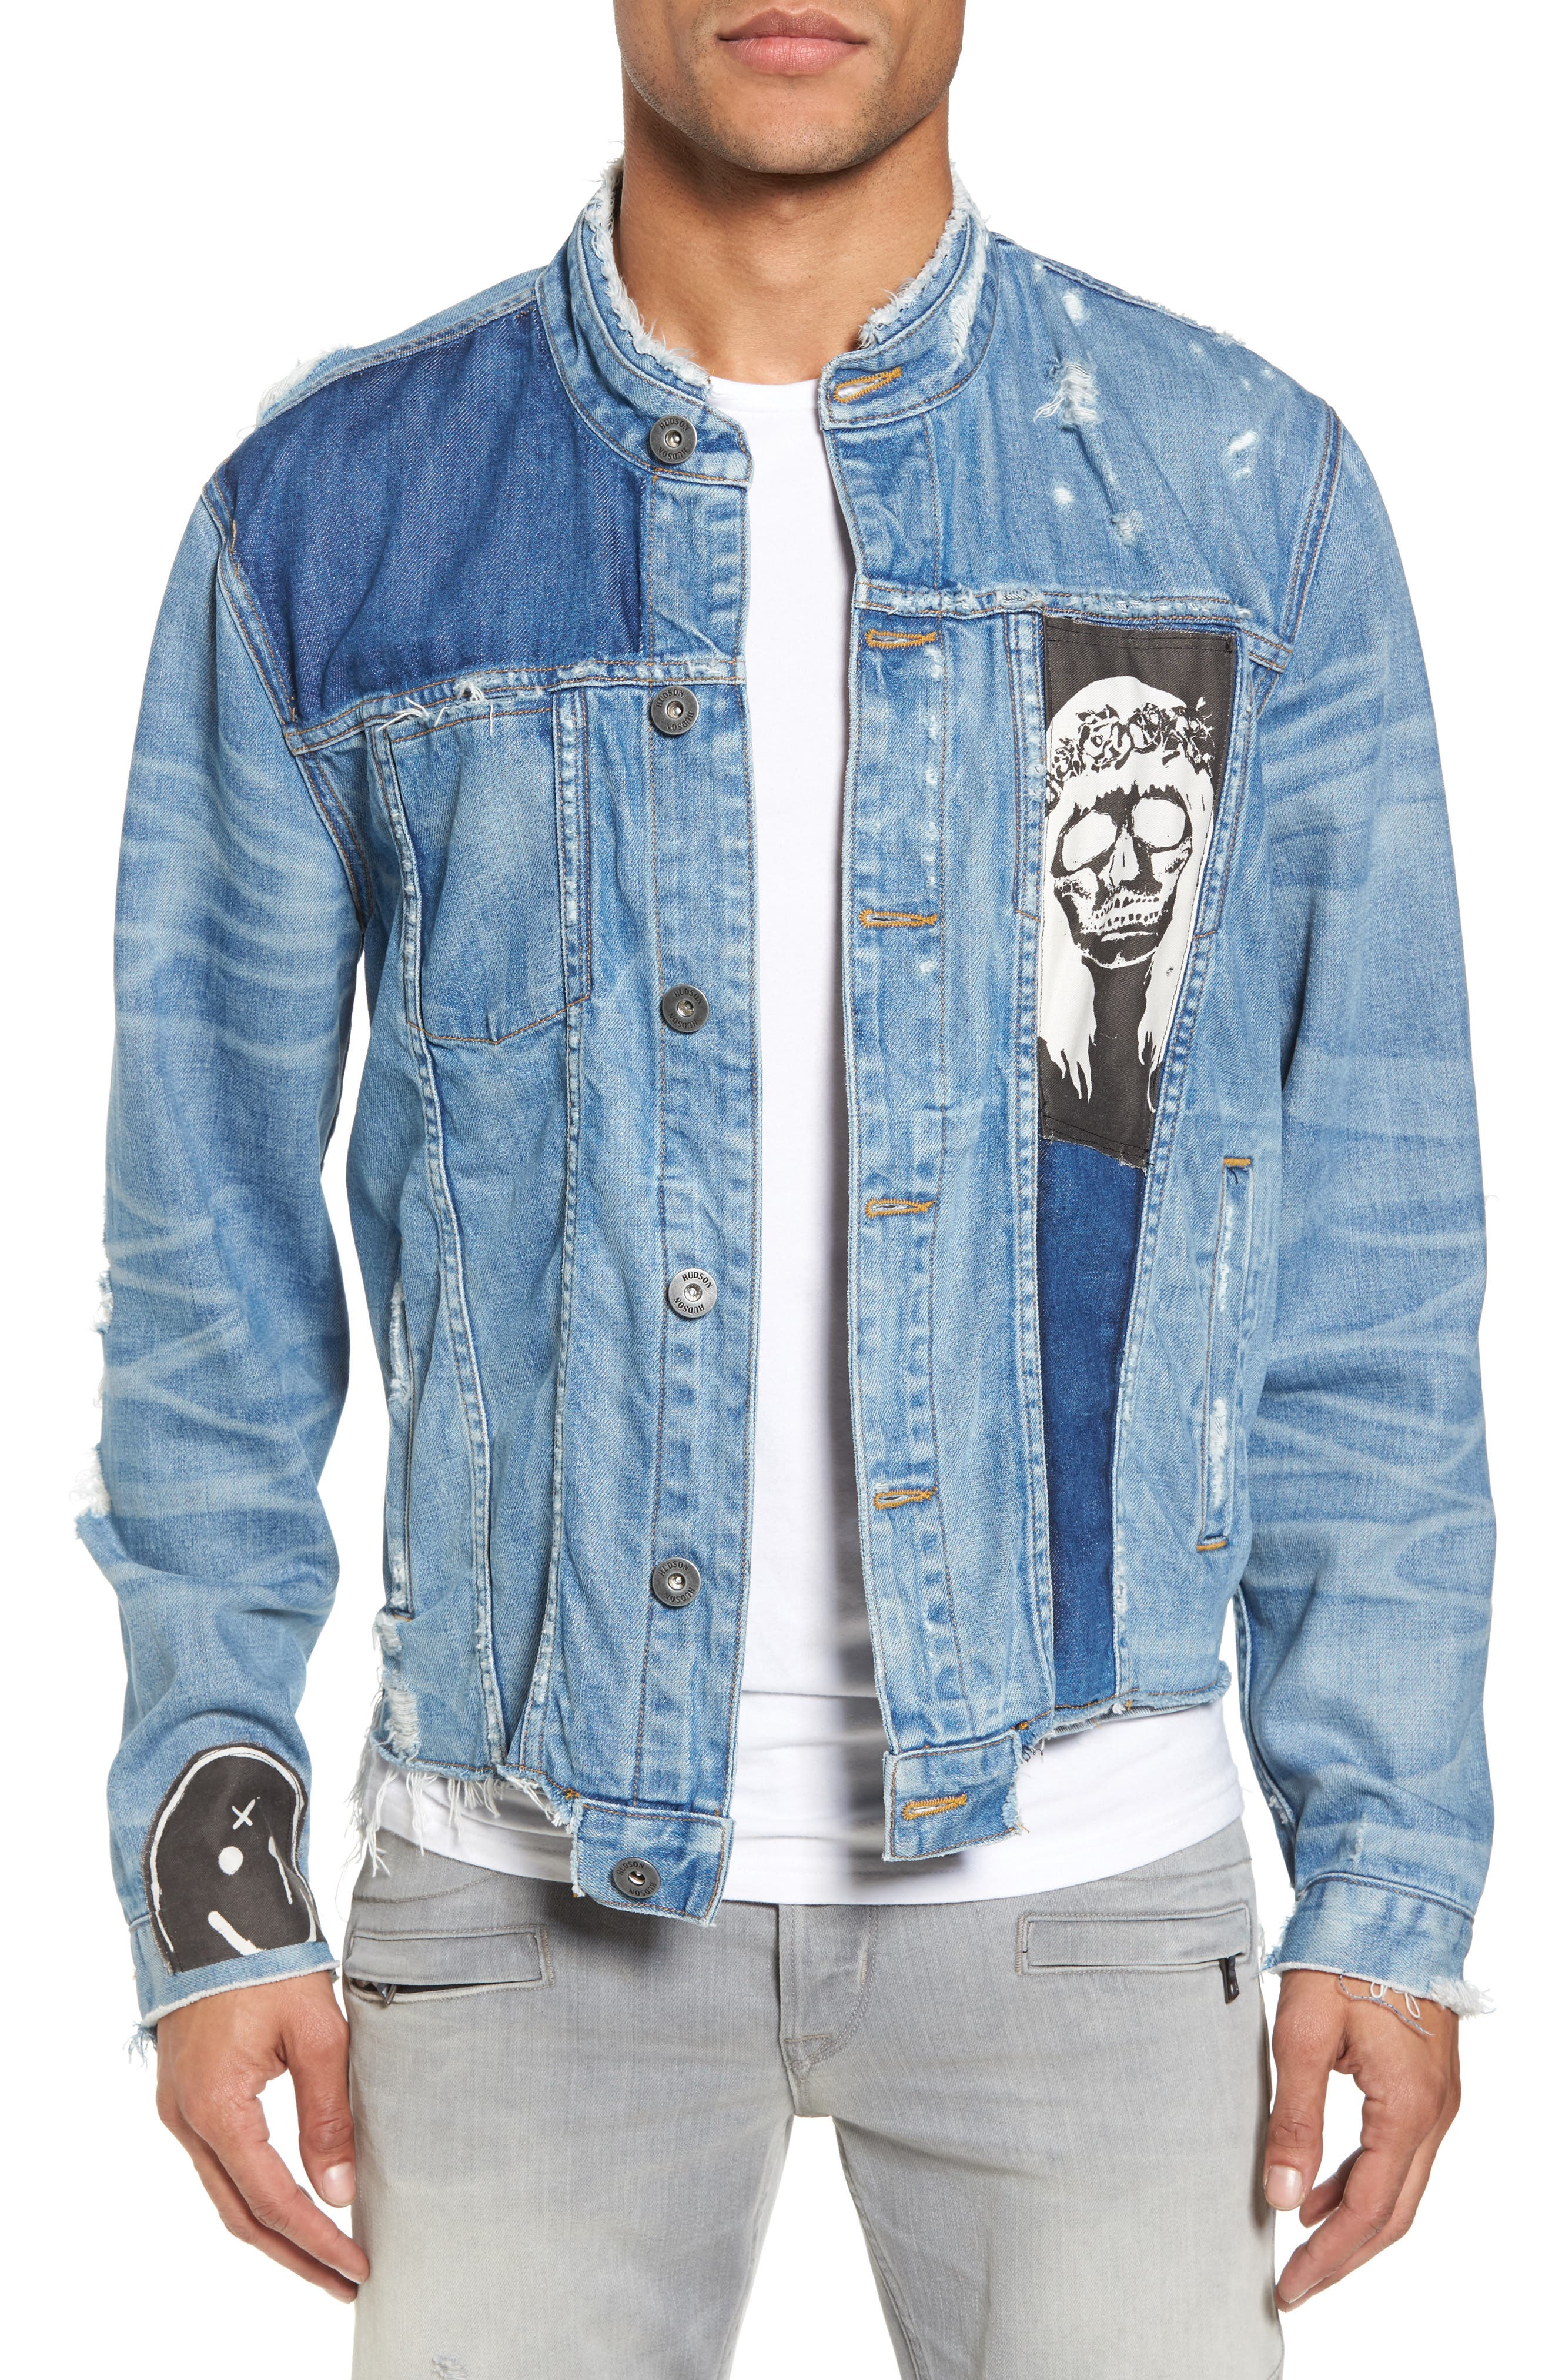 Blaine Crop Denim Jacket,                             Main thumbnail 1, color,                             Invert